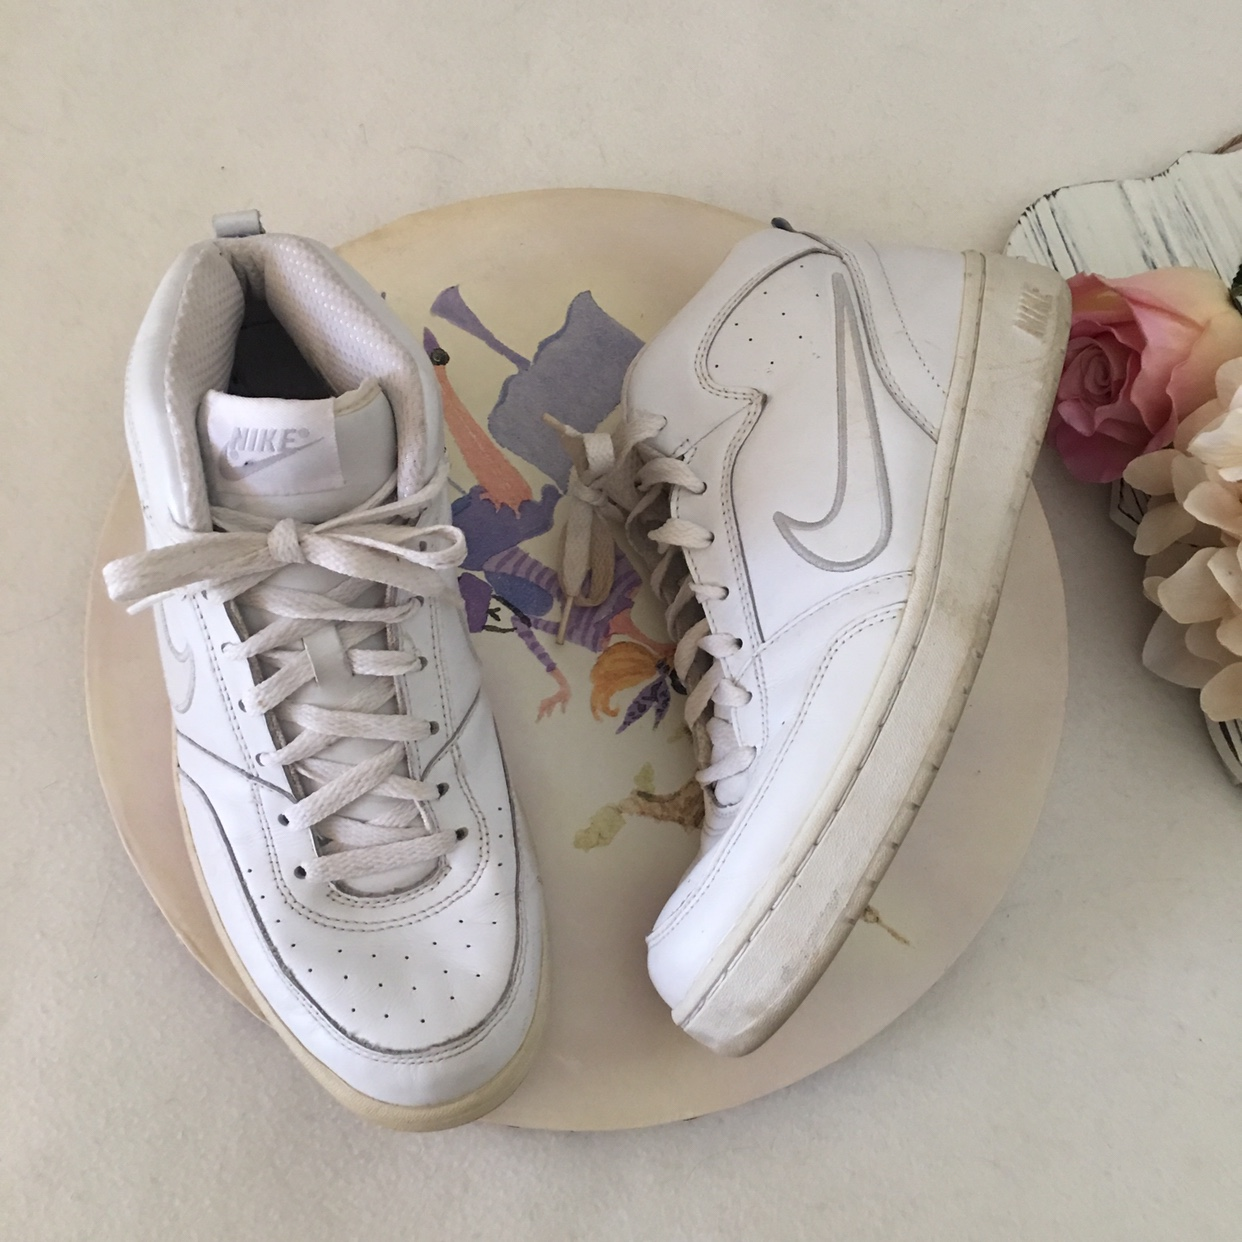 Vintage Nike basketball shoes. These are super cute Depop